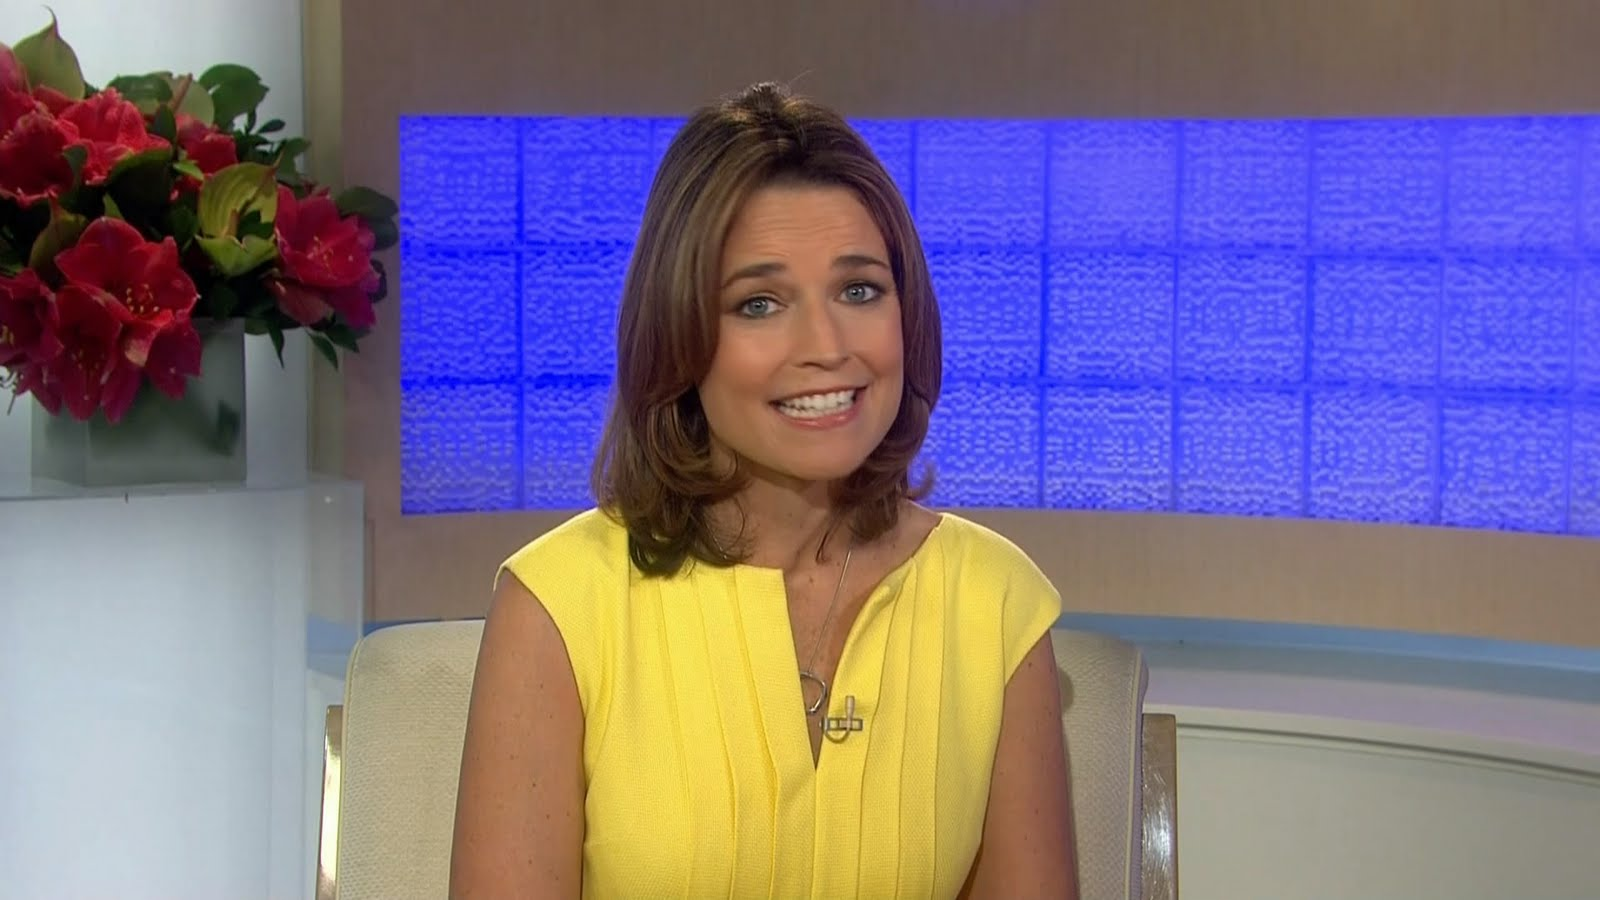 Savannah Guthrie Bikini http://www.legcross.com/2010/08/savannah-guthrie-pretty-in-yellow.html